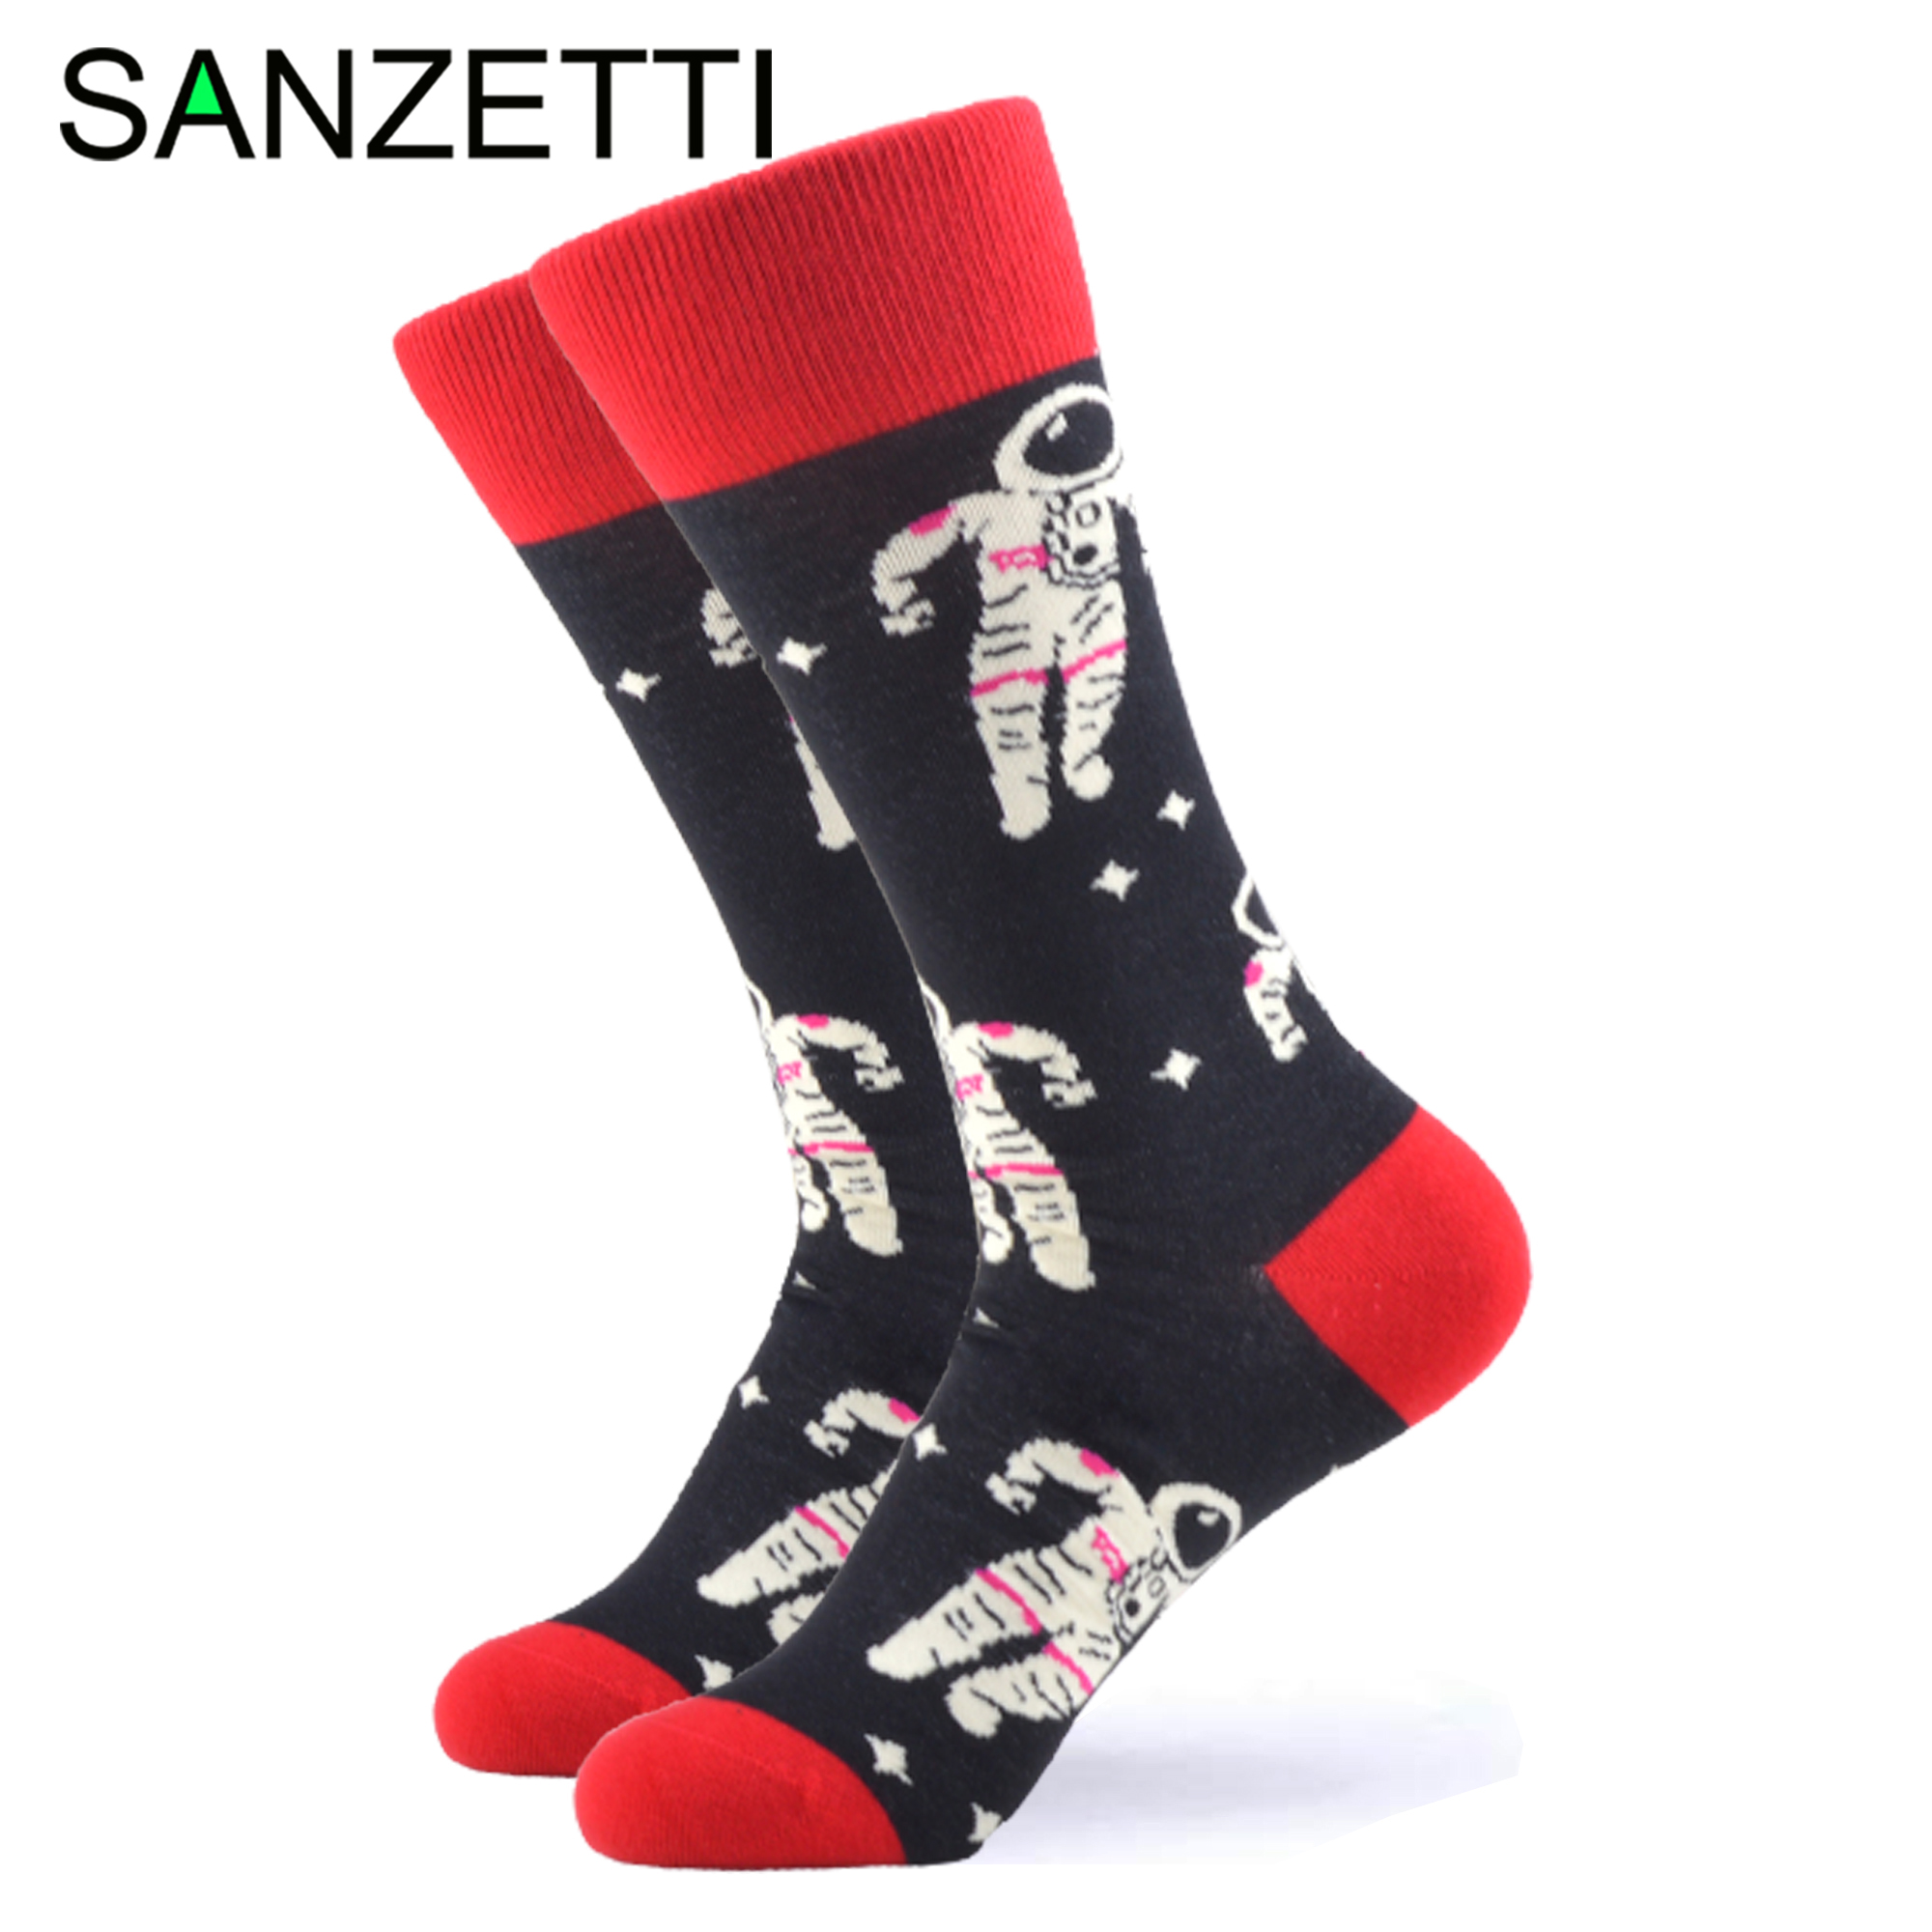 SANZETTI 1 Pair Happy Socks High Quality Men Colorful Comfortable Combed Cotton Astronaut Space Novelty Gift Wedding Dress Socks